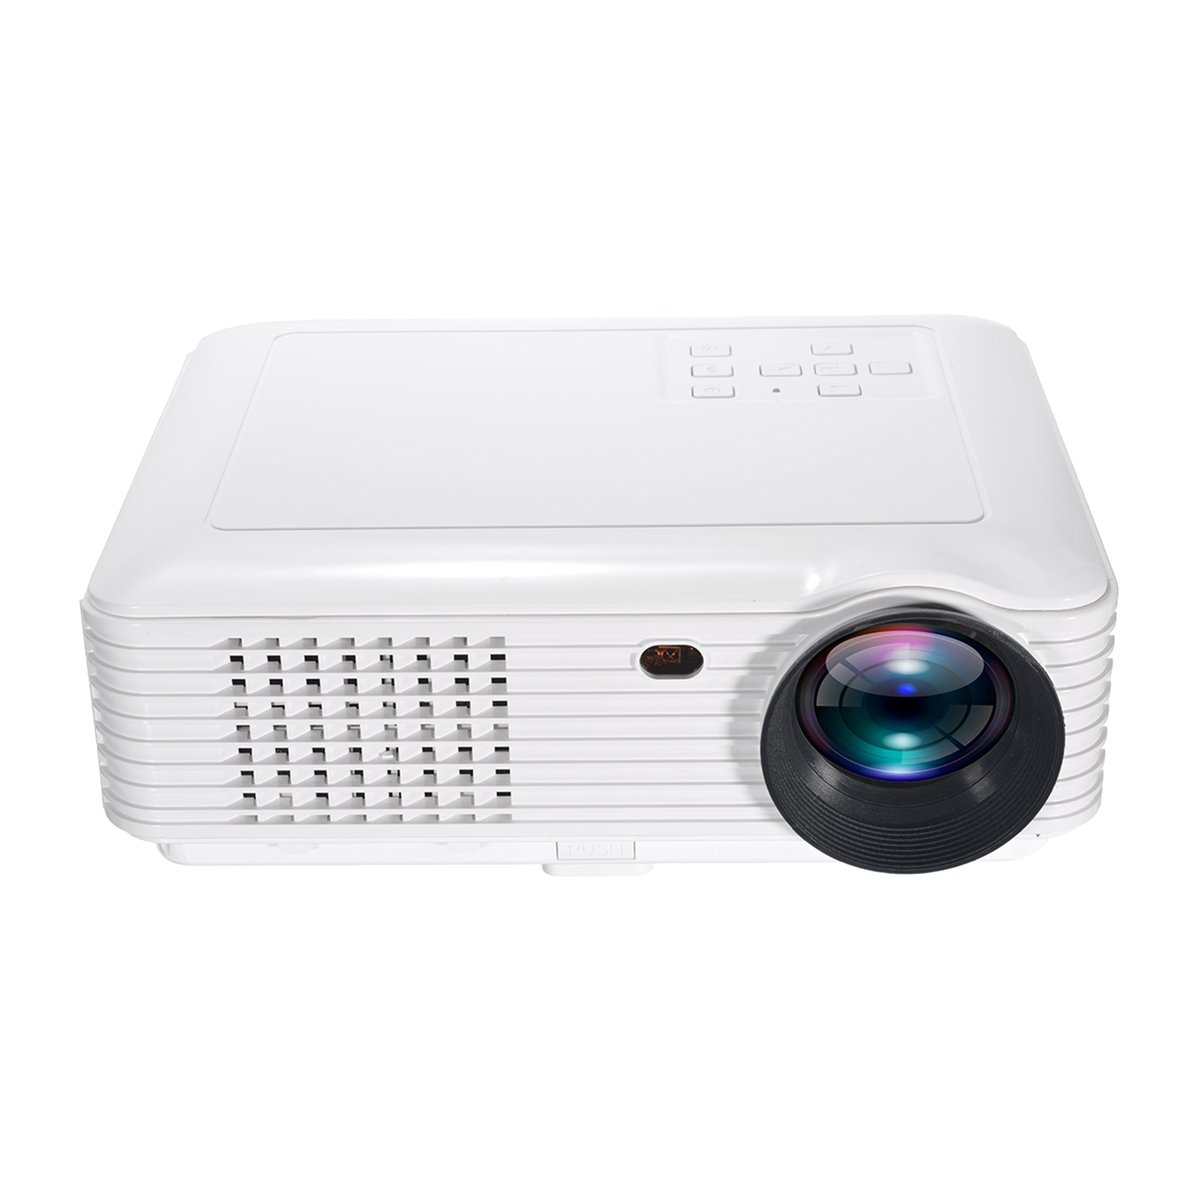 LED Projector,ELEGIANT 3500 Lumens Mini Portable Home Theater Projector 800x480 Resolution Support 1080P USB VGA SD AV for Home Theater Video Games Gaming Business Presentations White by ELEGIANT